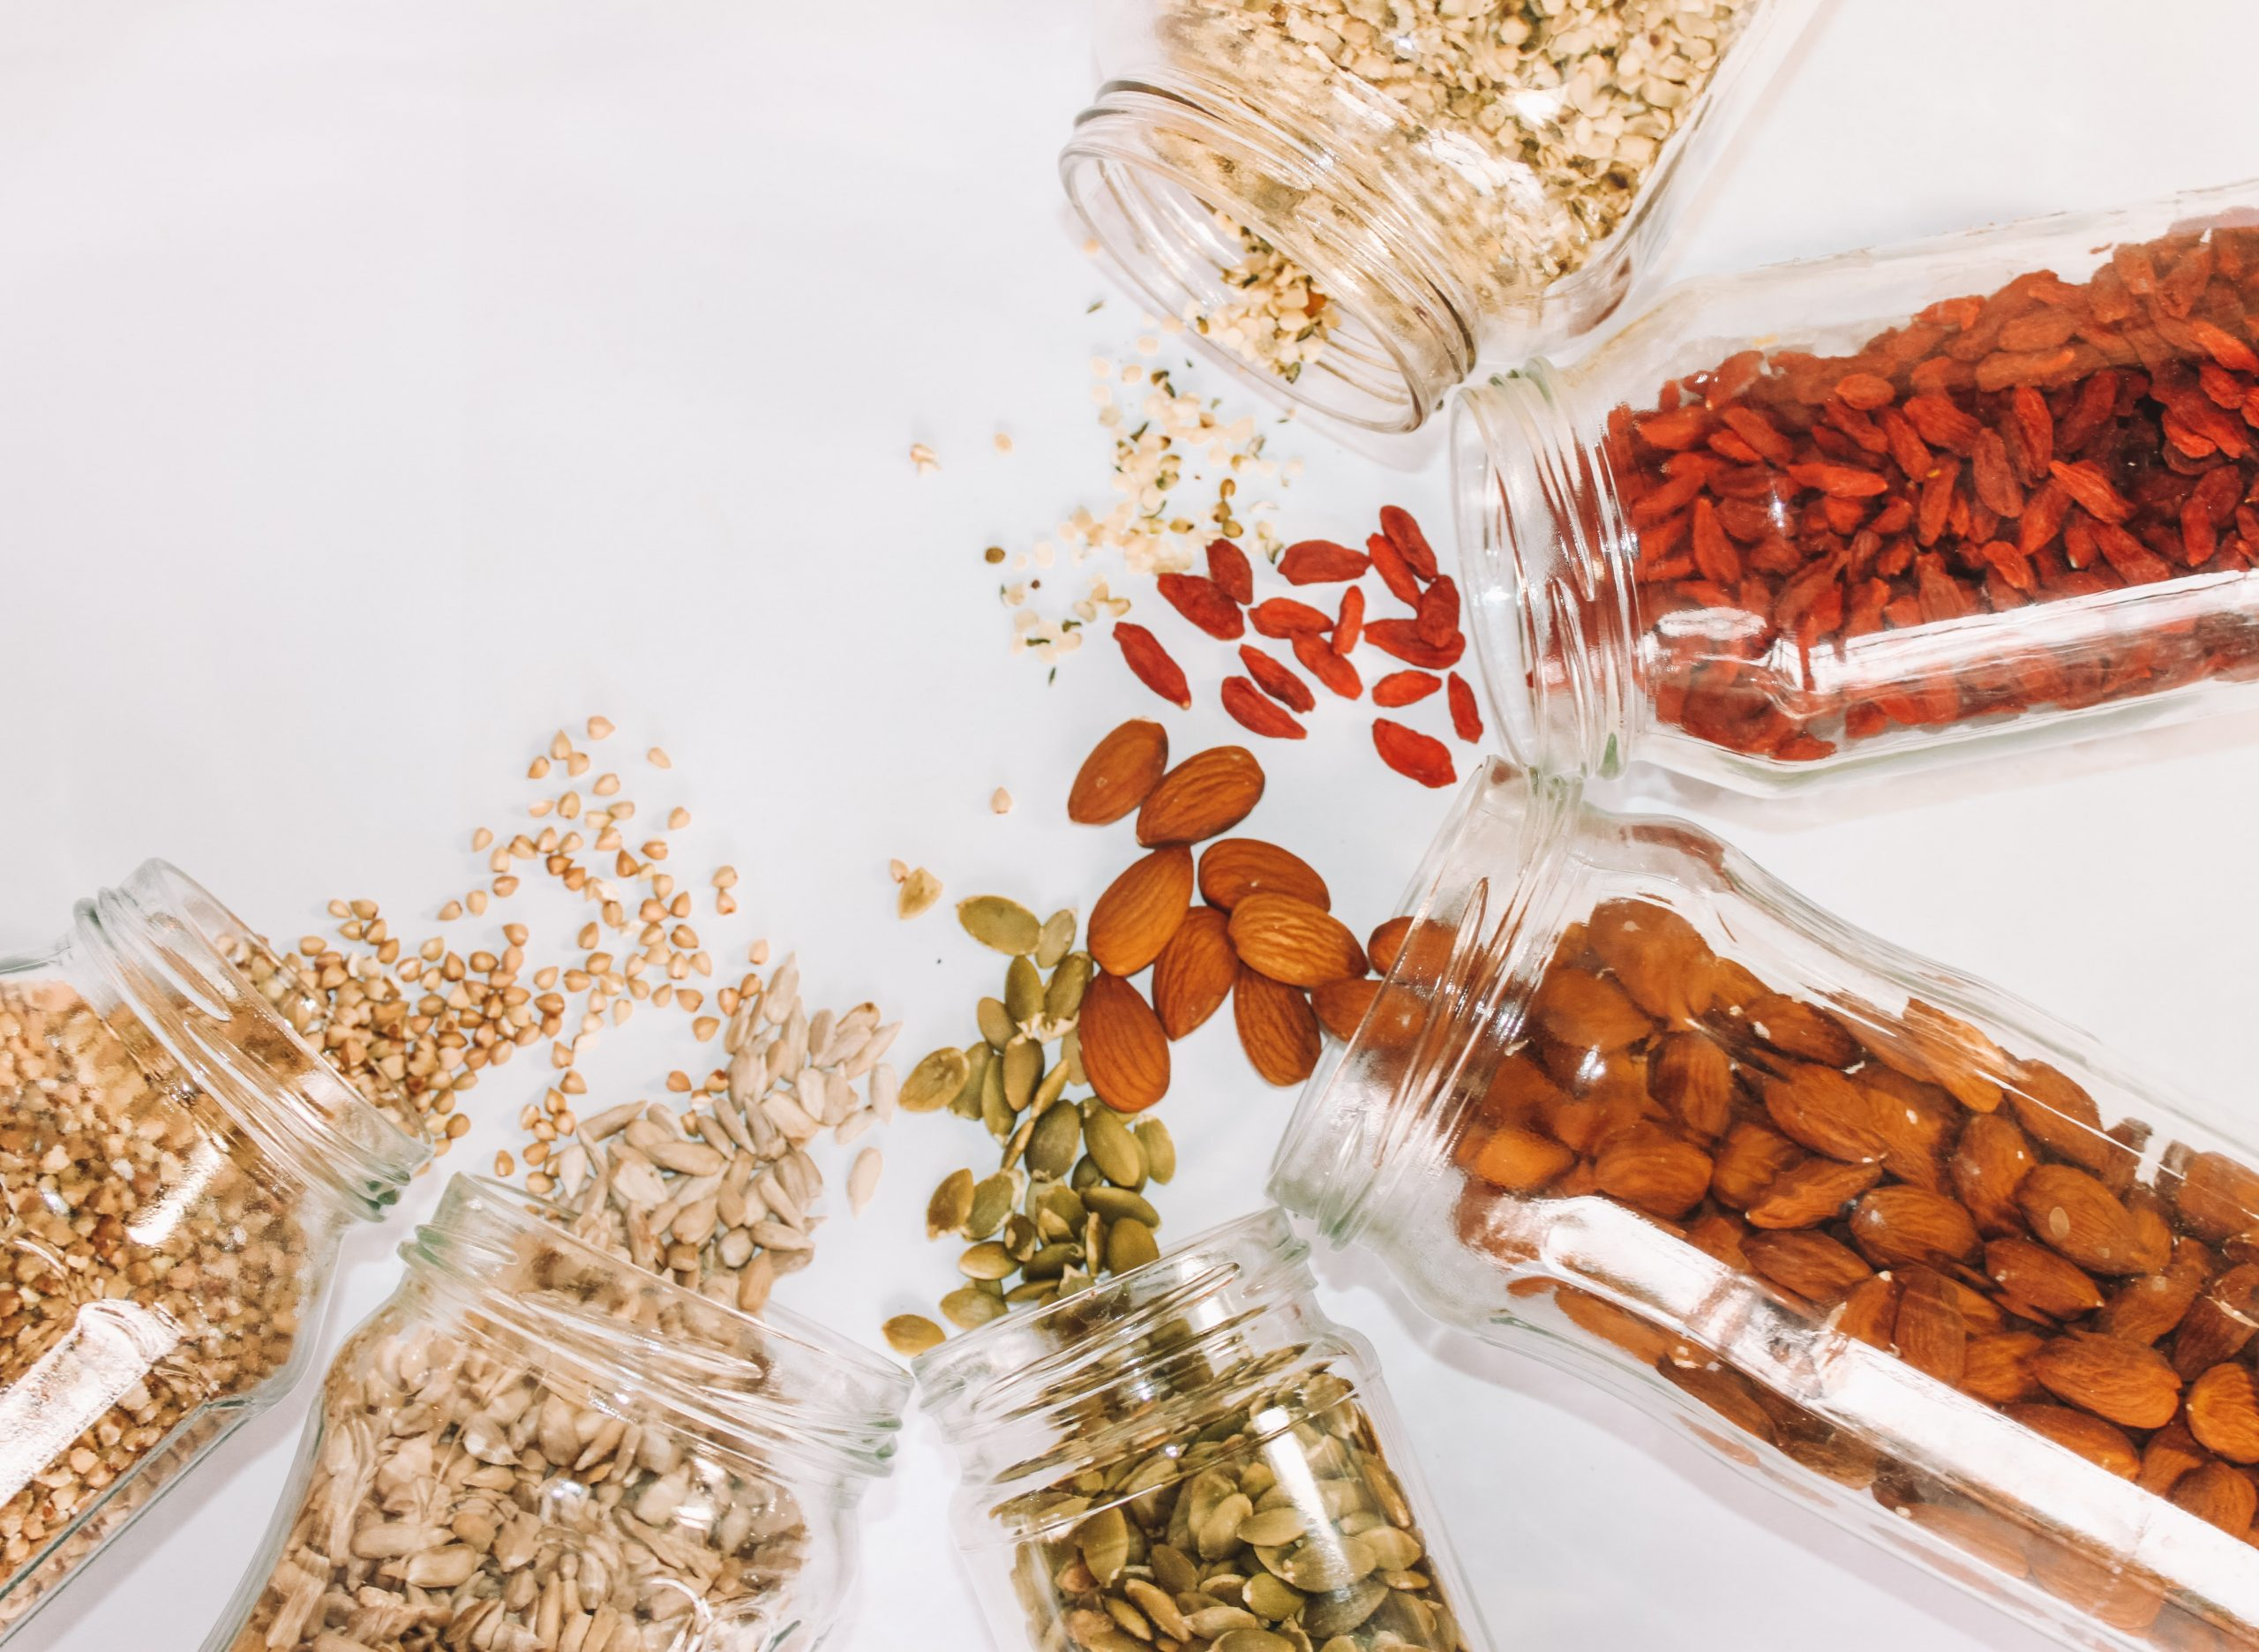 various nuts in jars and strewn on table